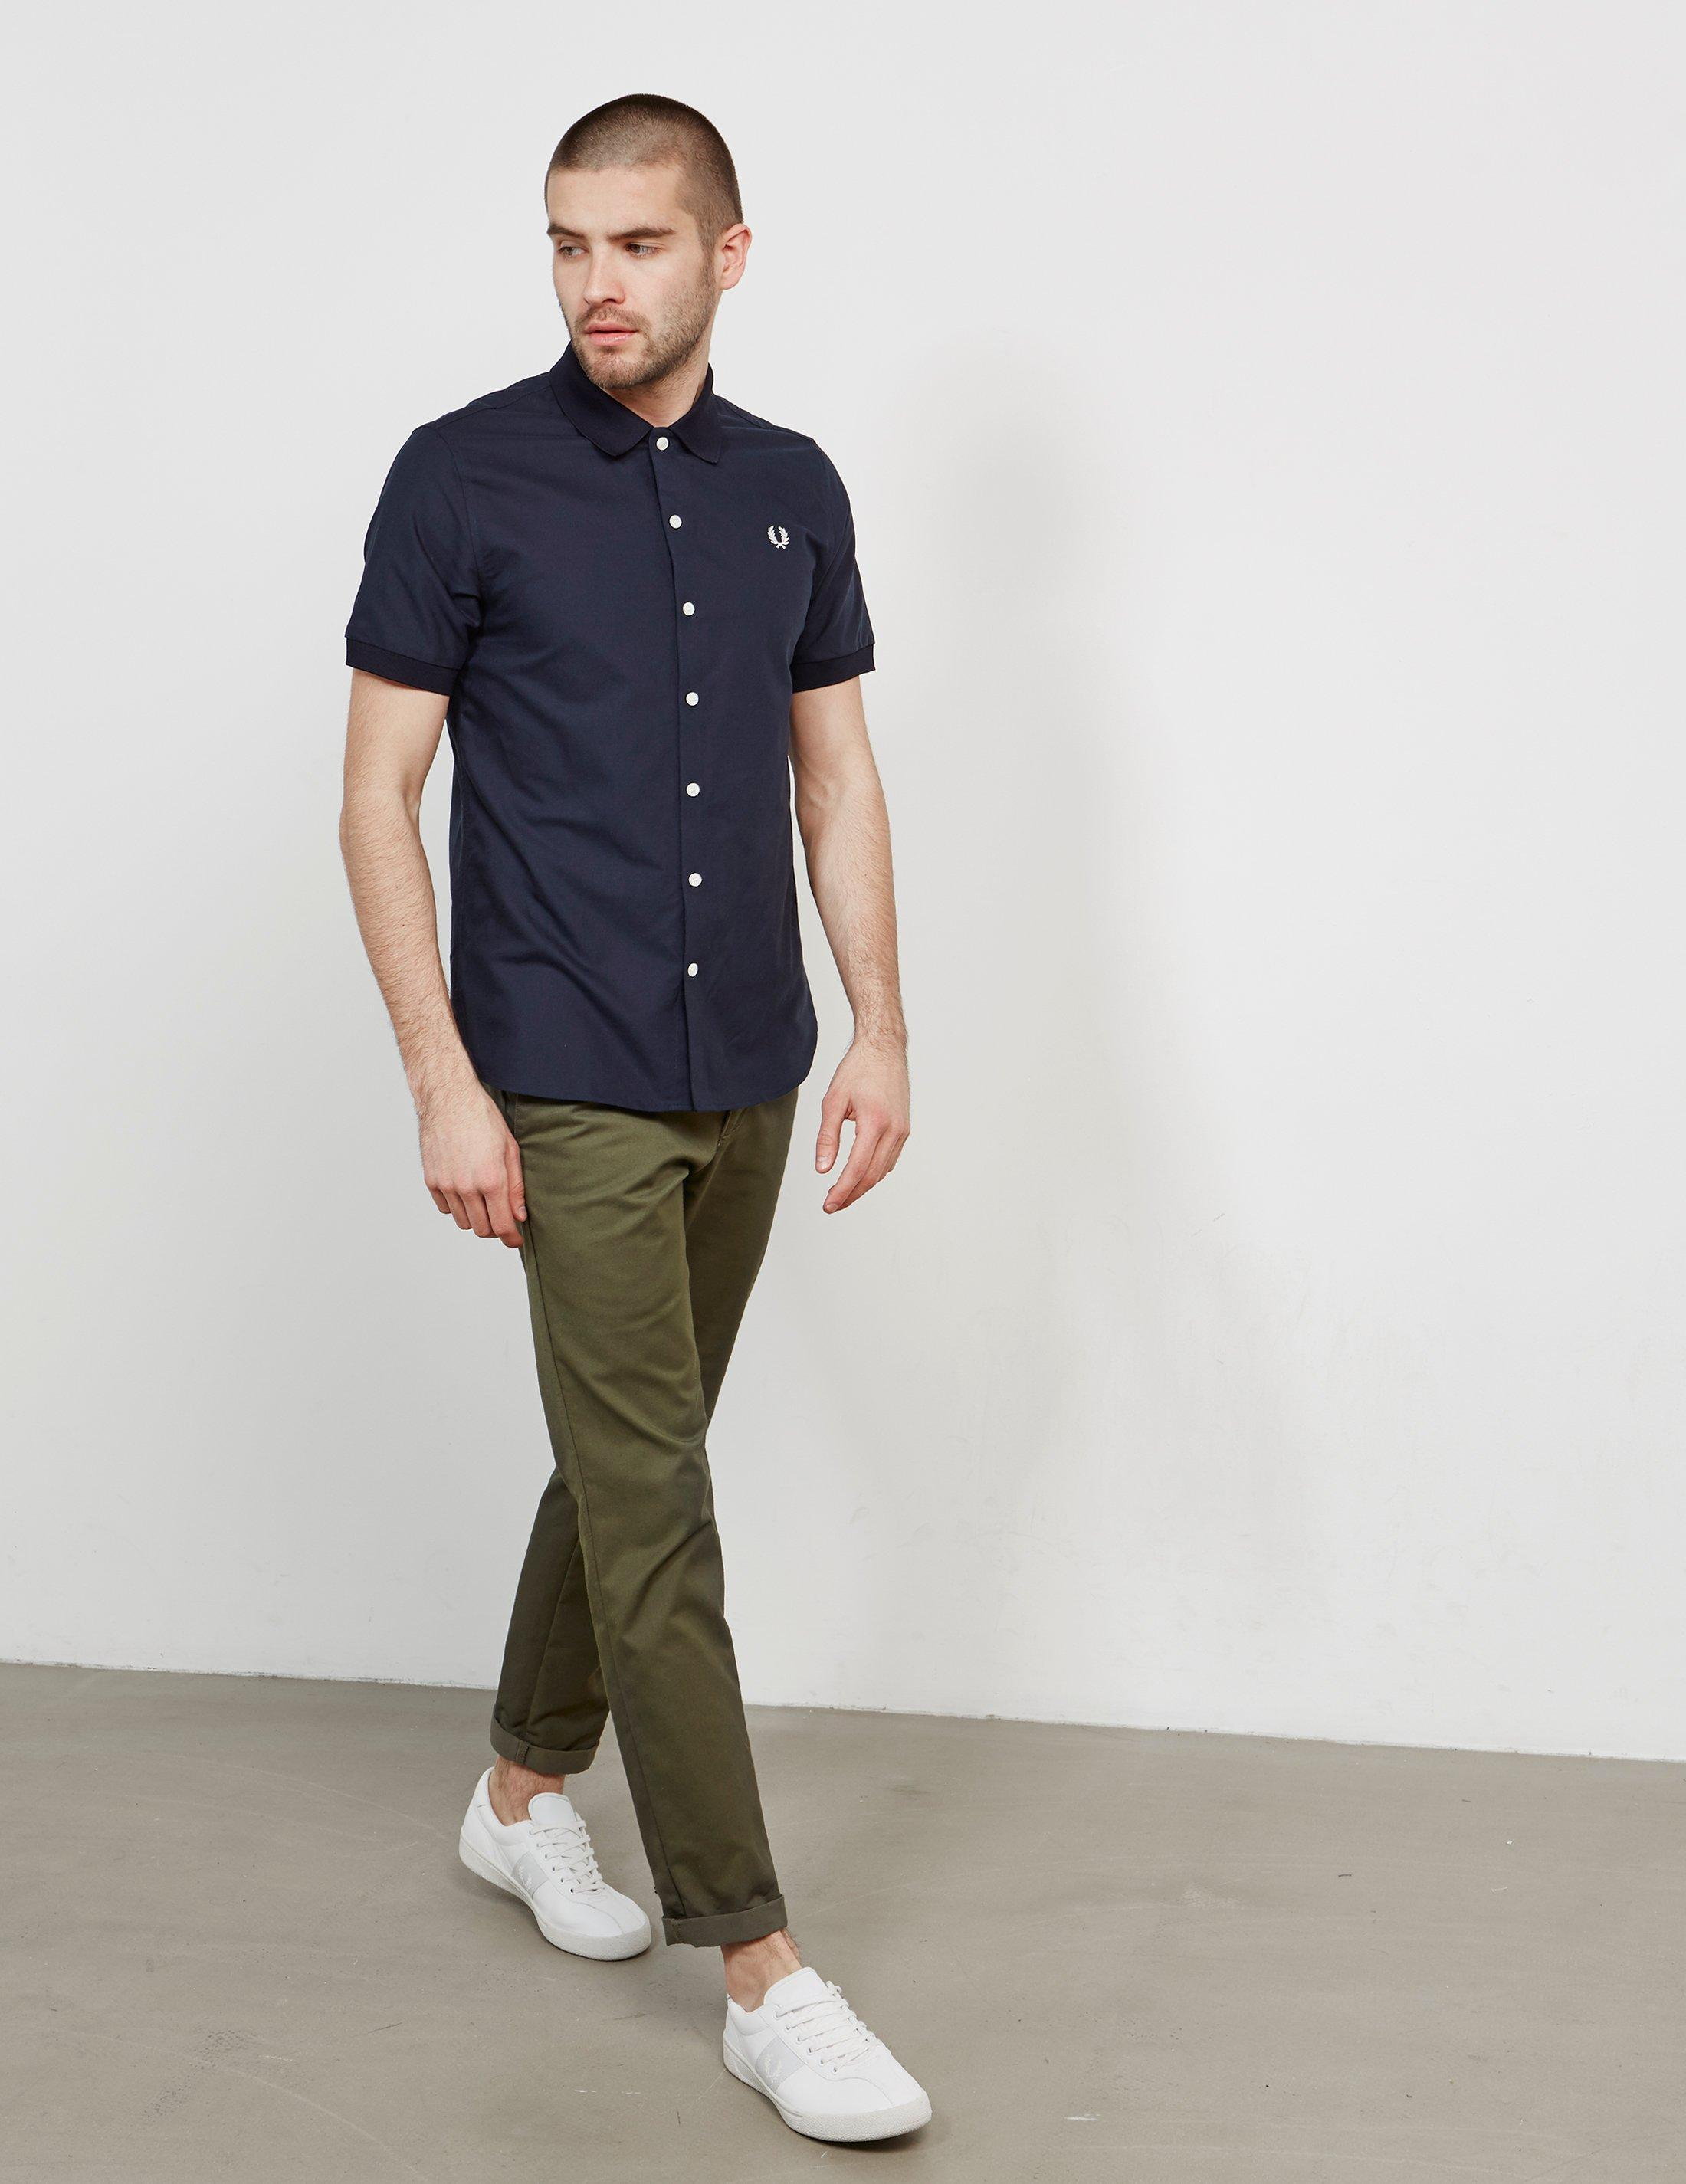 2c2fa1290 Fred Perry Knitted Collar Short Sleeve Oxford Shirt in Blue for Men - Save  39% - Lyst